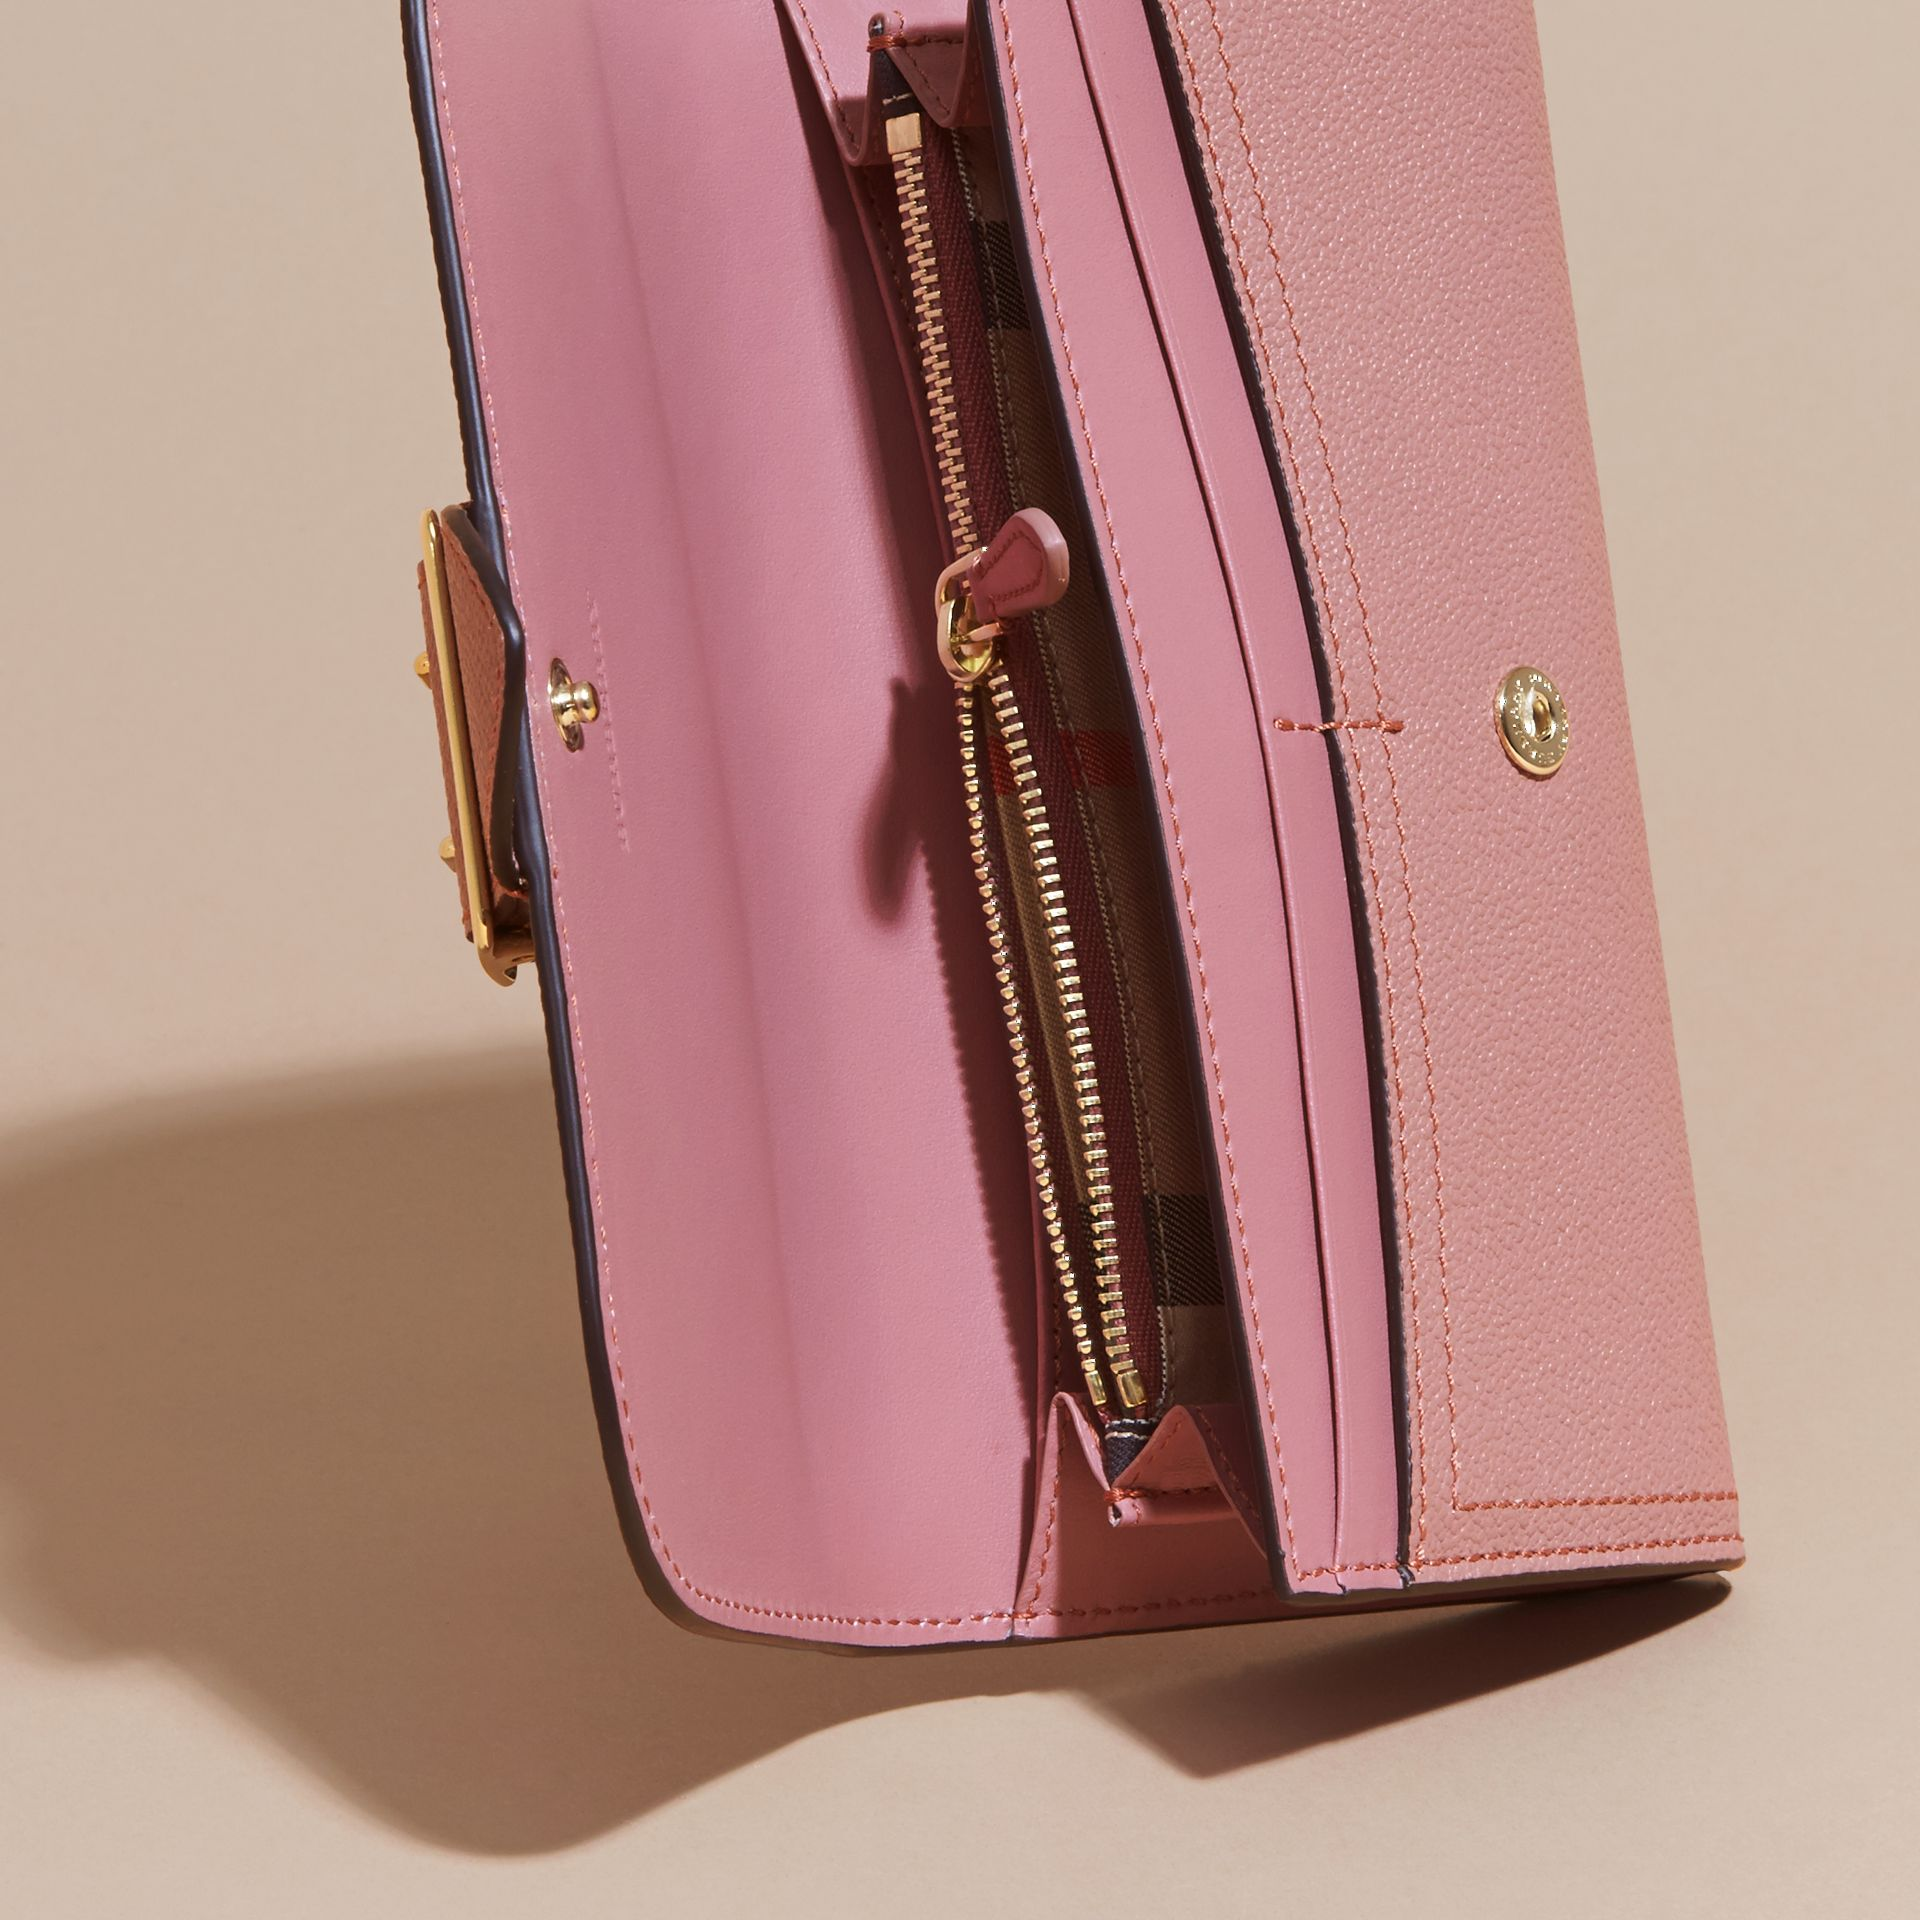 Textured Leather Continental Wallet in Dusty Pink - Women | Burberry - gallery image 5